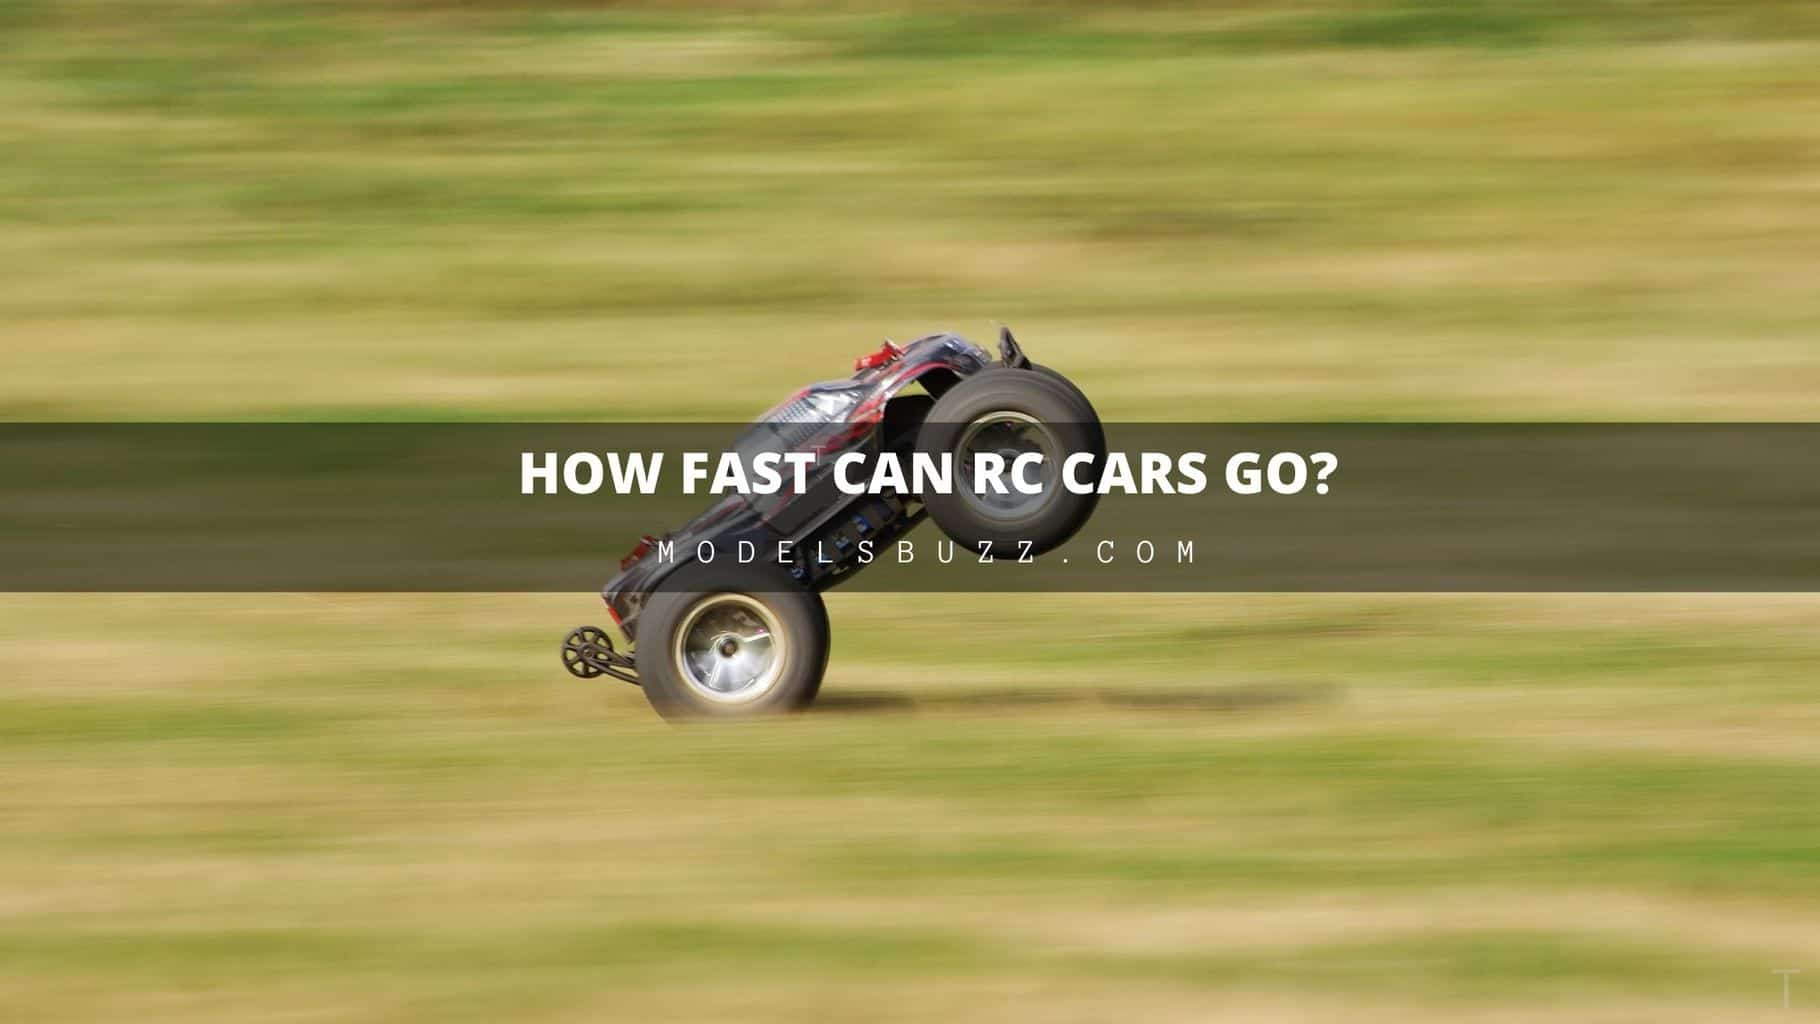 How Fast Can RC Cars Go - how to make them go faster